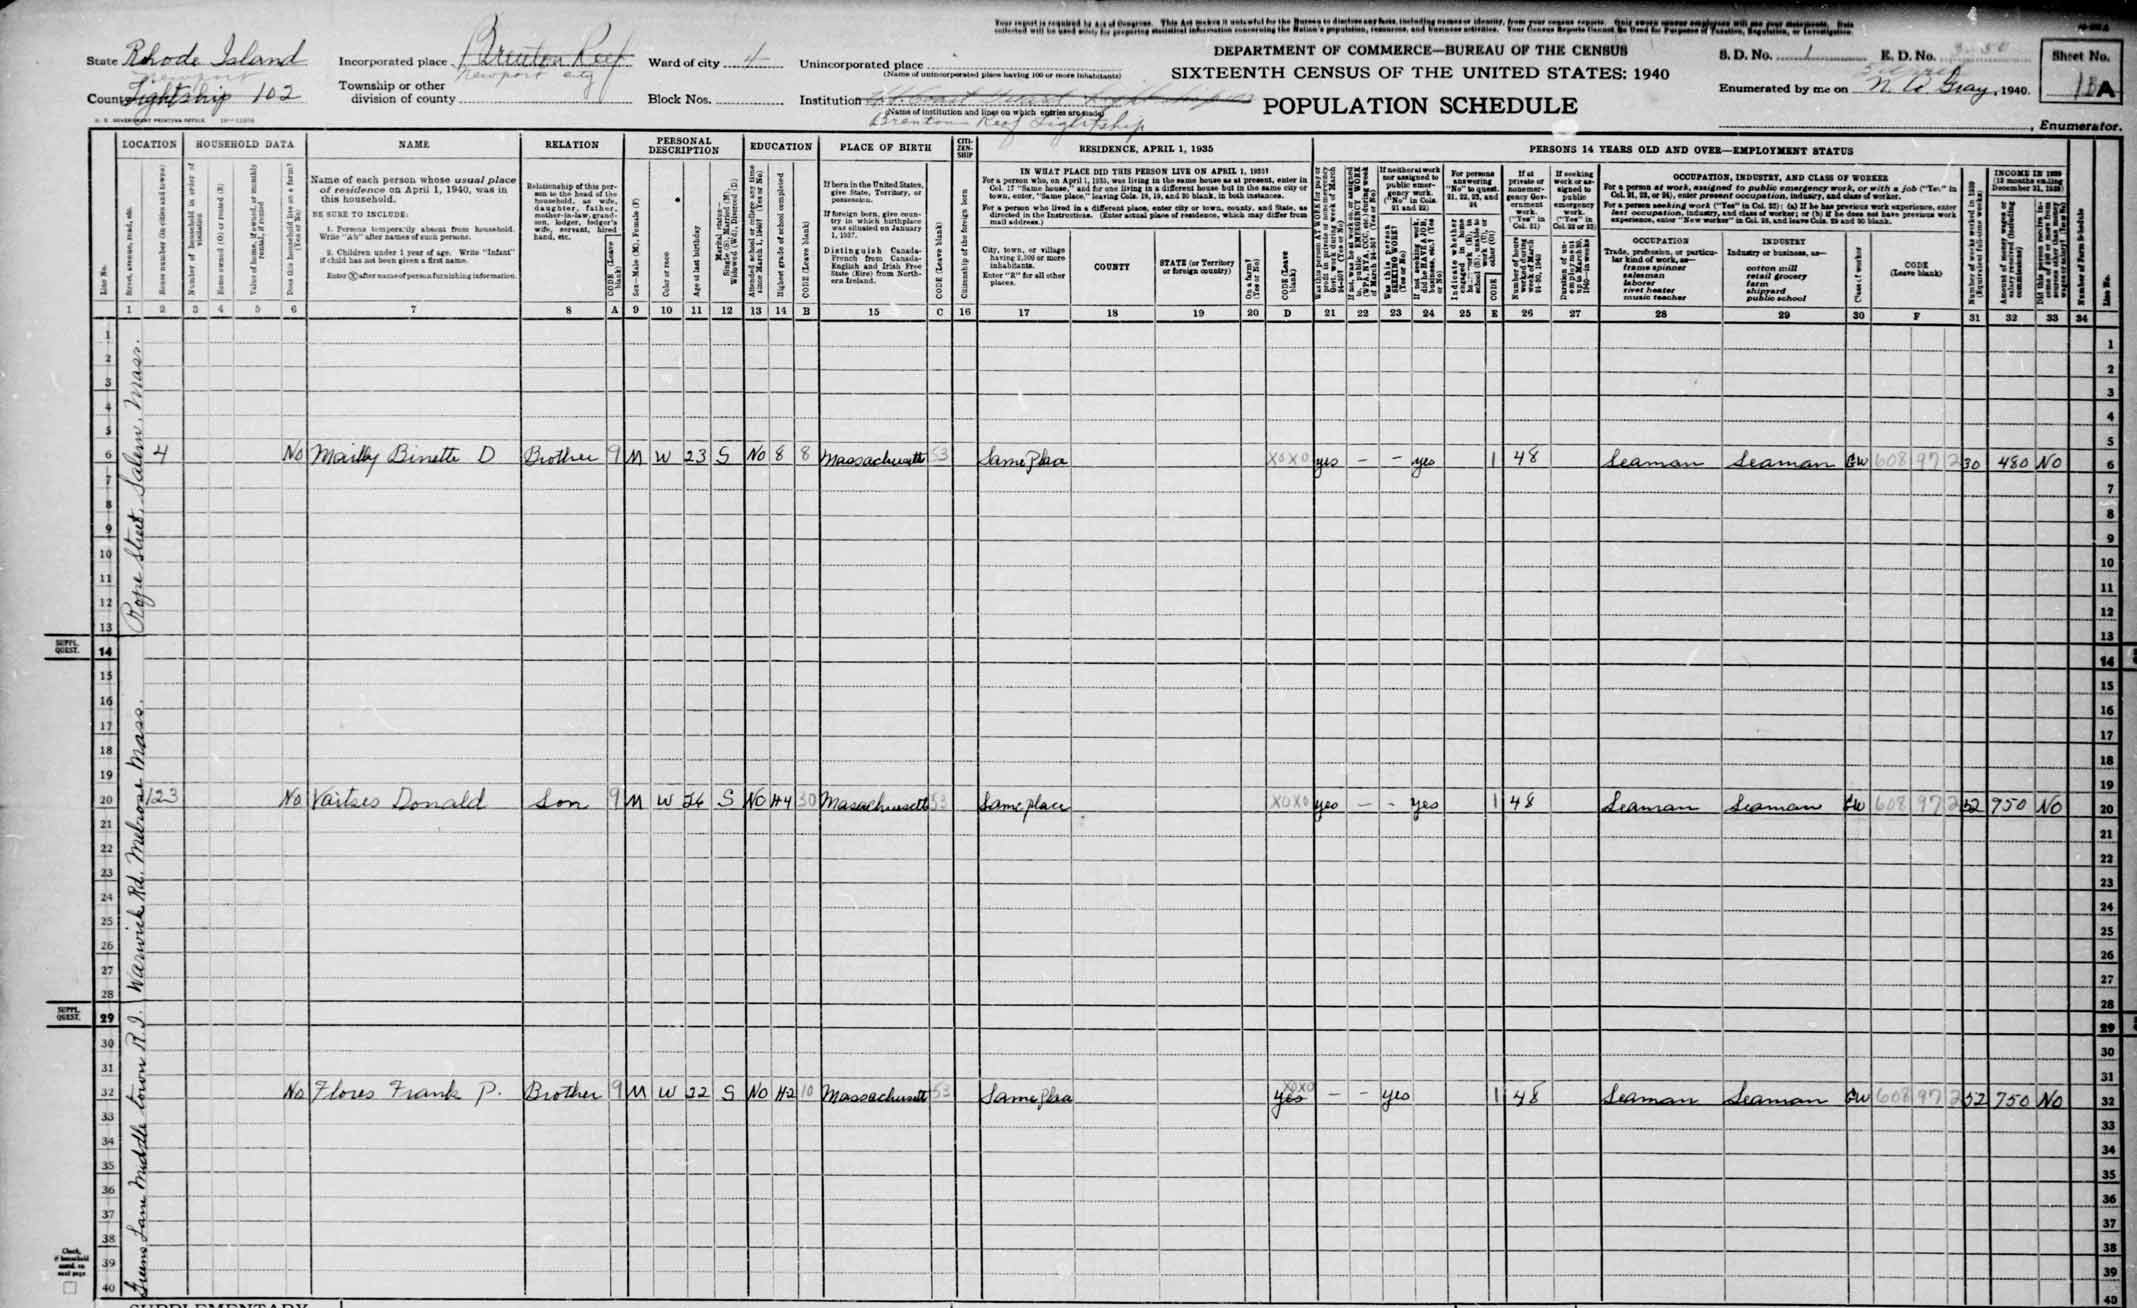 Brenton Reef Lightship 1940 Census